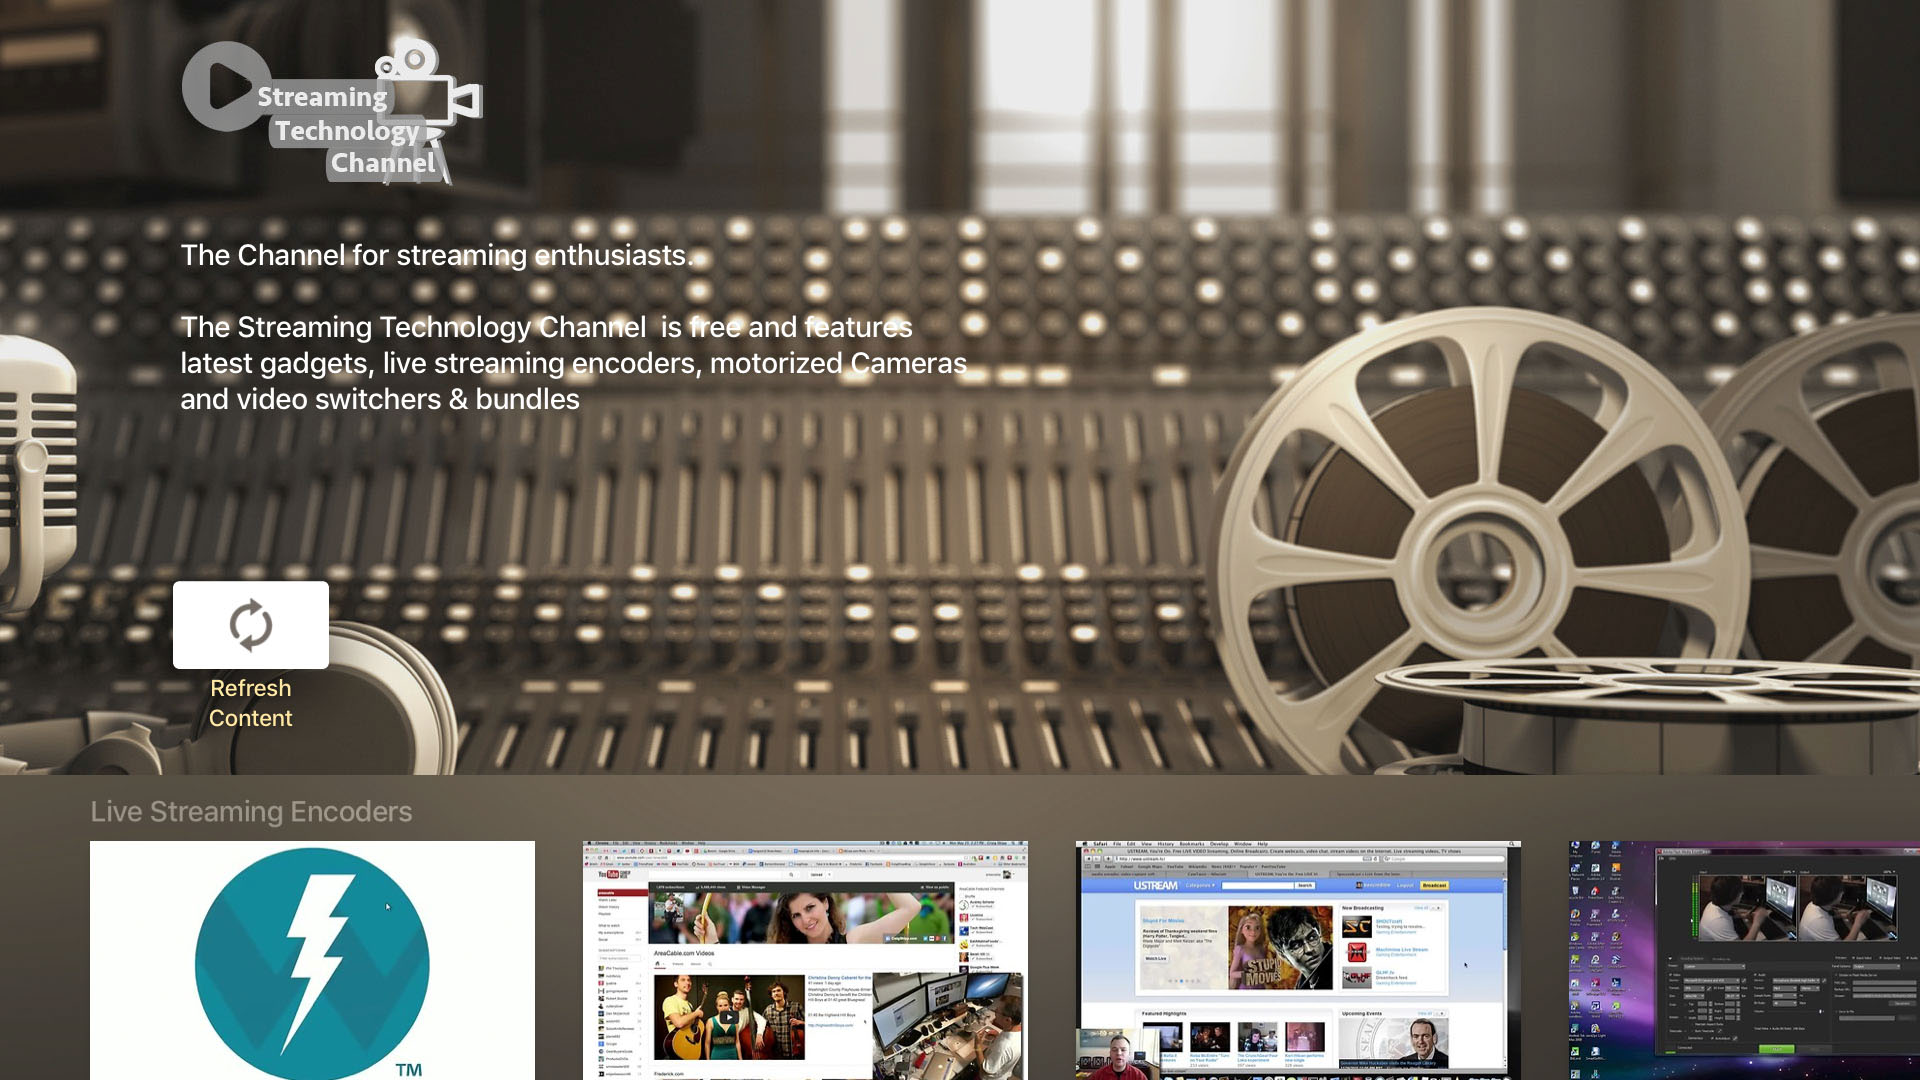 The Streaming Technology Channel Screenshot 001